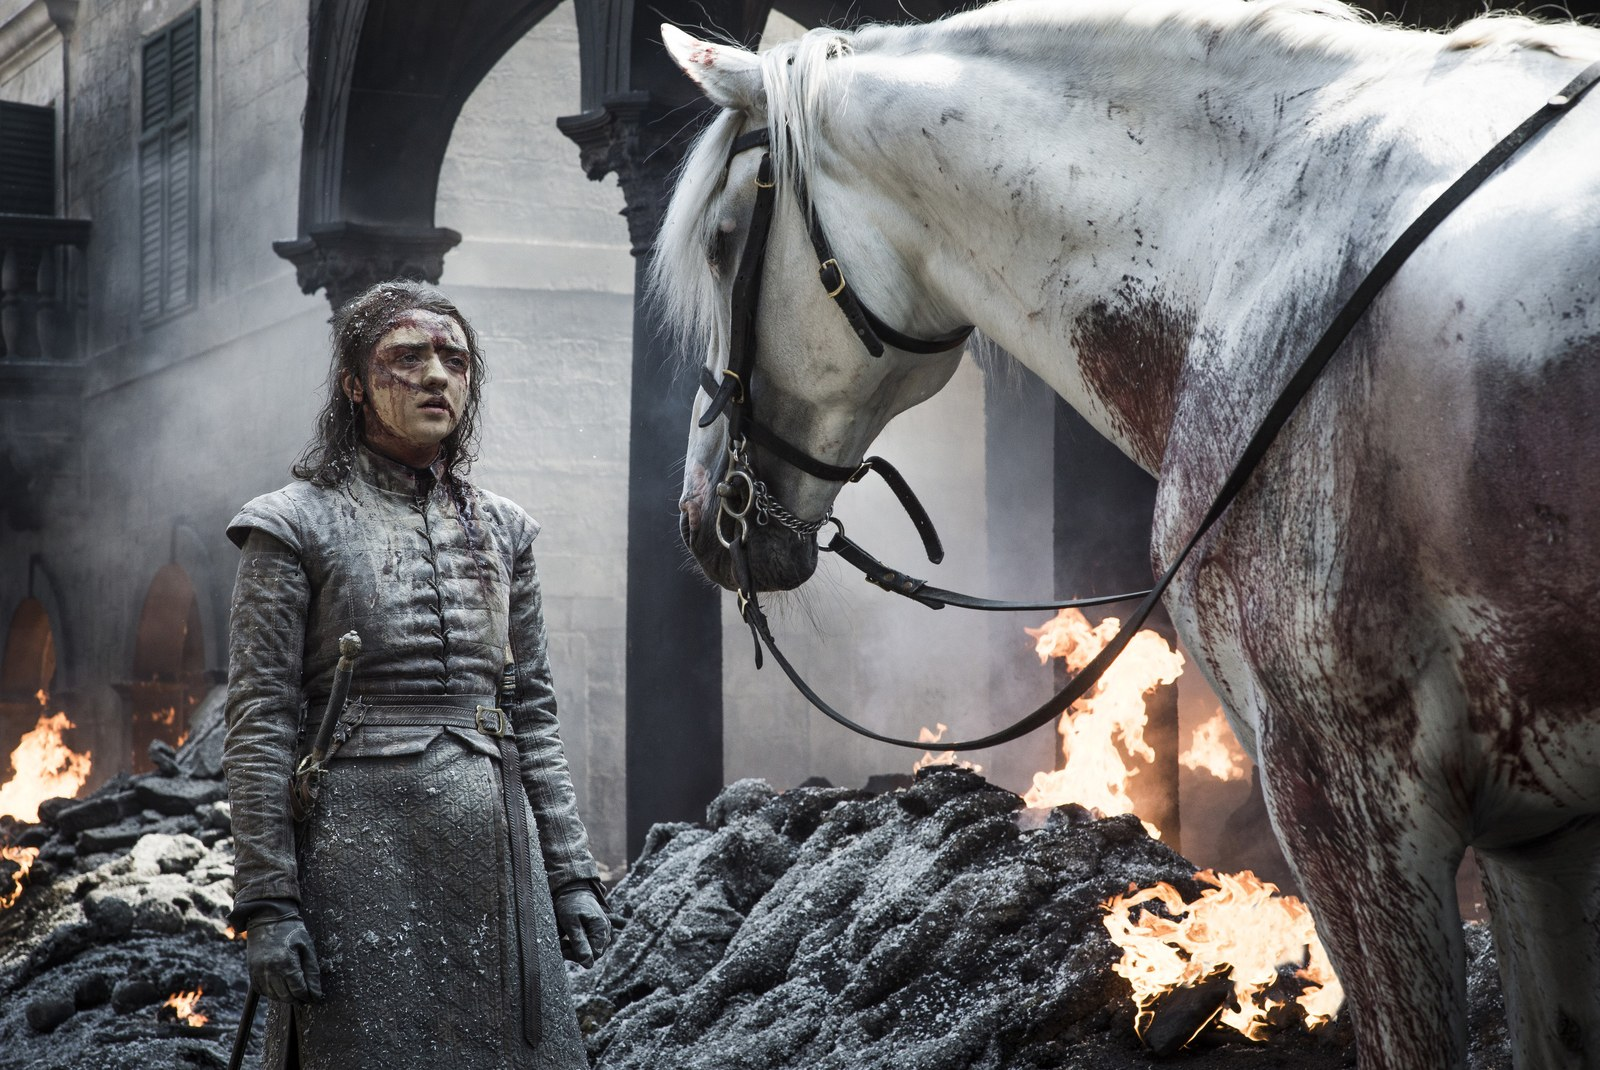 Arya Stark and a white horse in season 8 of Game of Thrones.